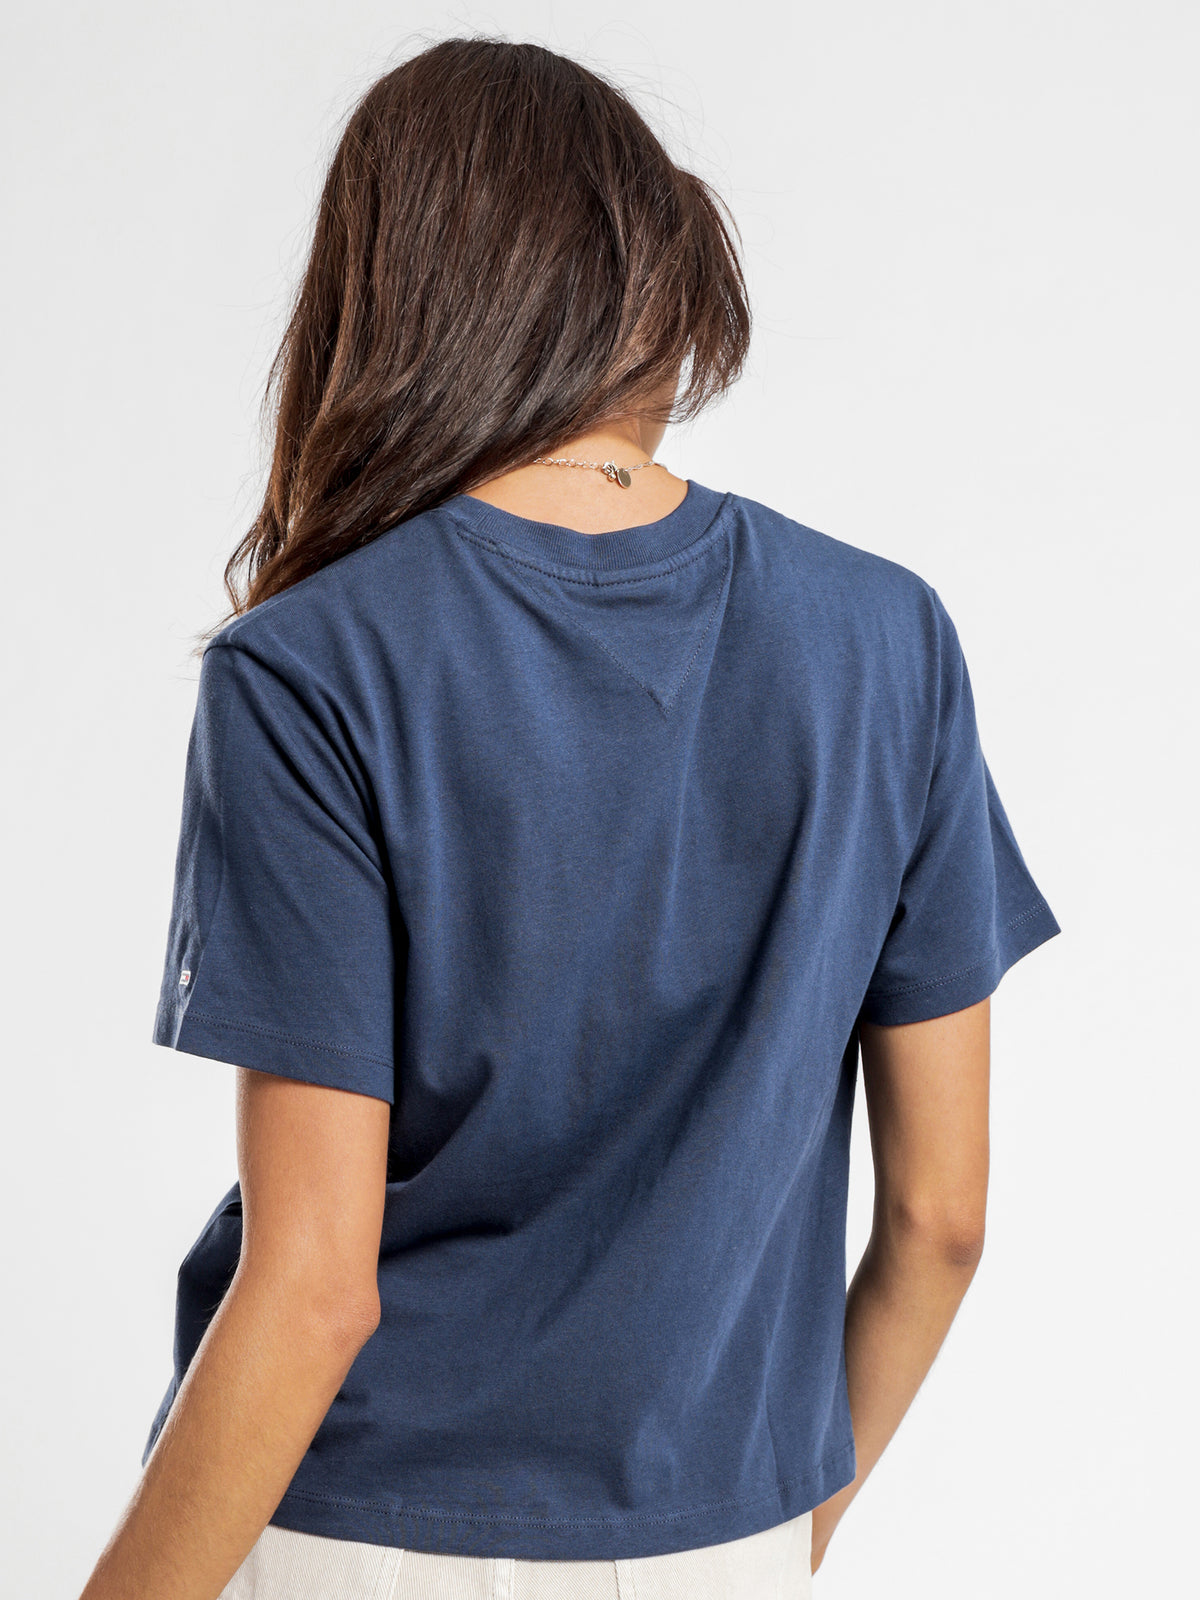 Modern Linear Logo T-Shirt in Twilight Navy